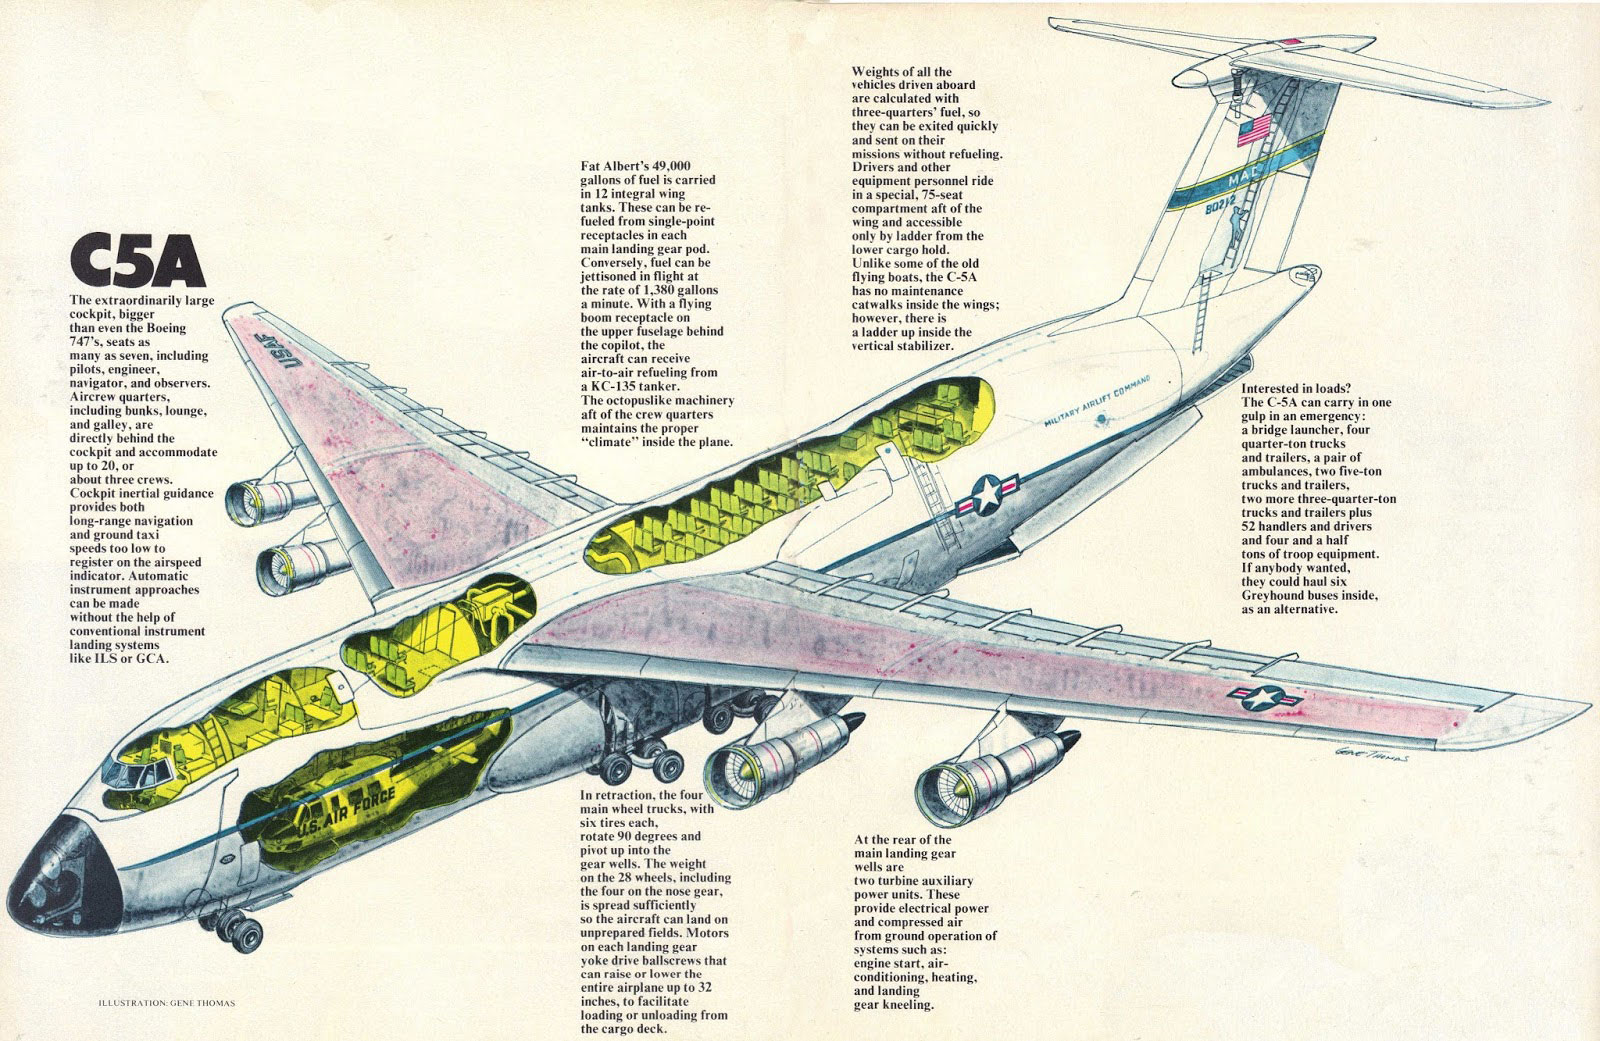 Lockheed C-5 Galaxy cutaway drawing